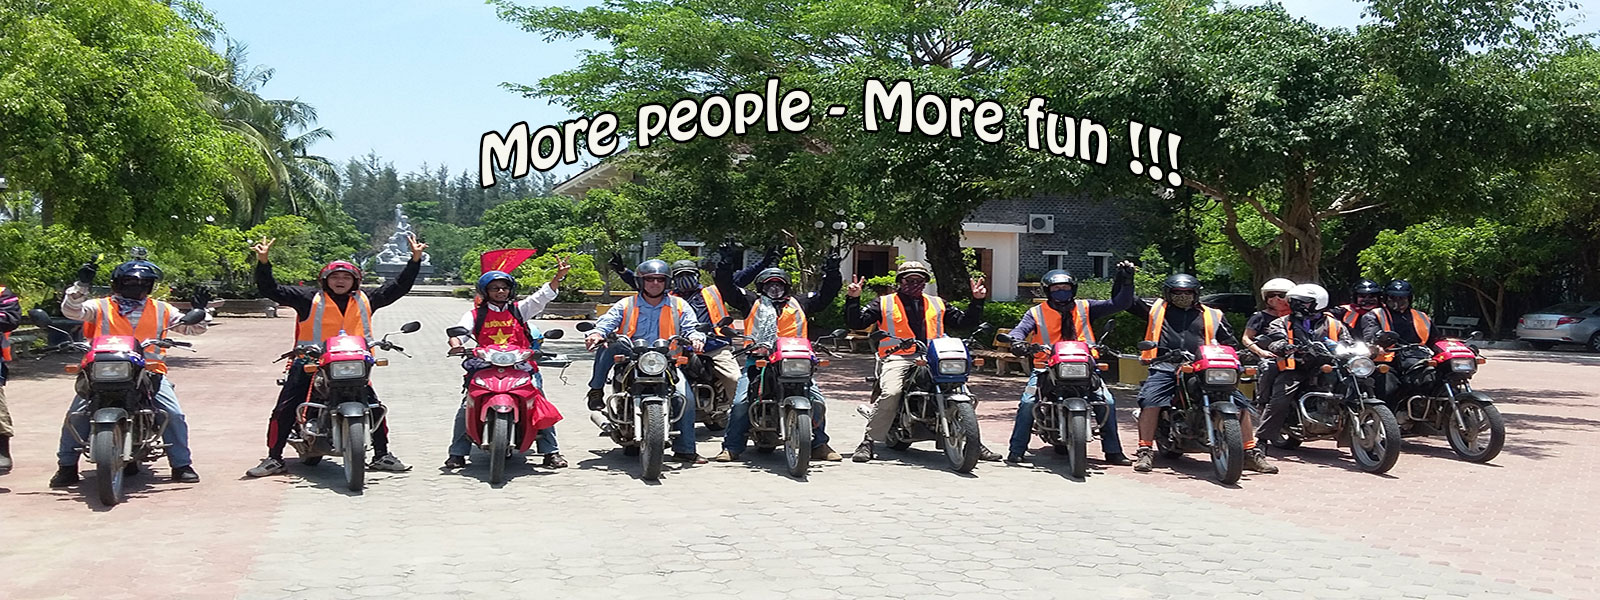 Tours for Motorbike clubs